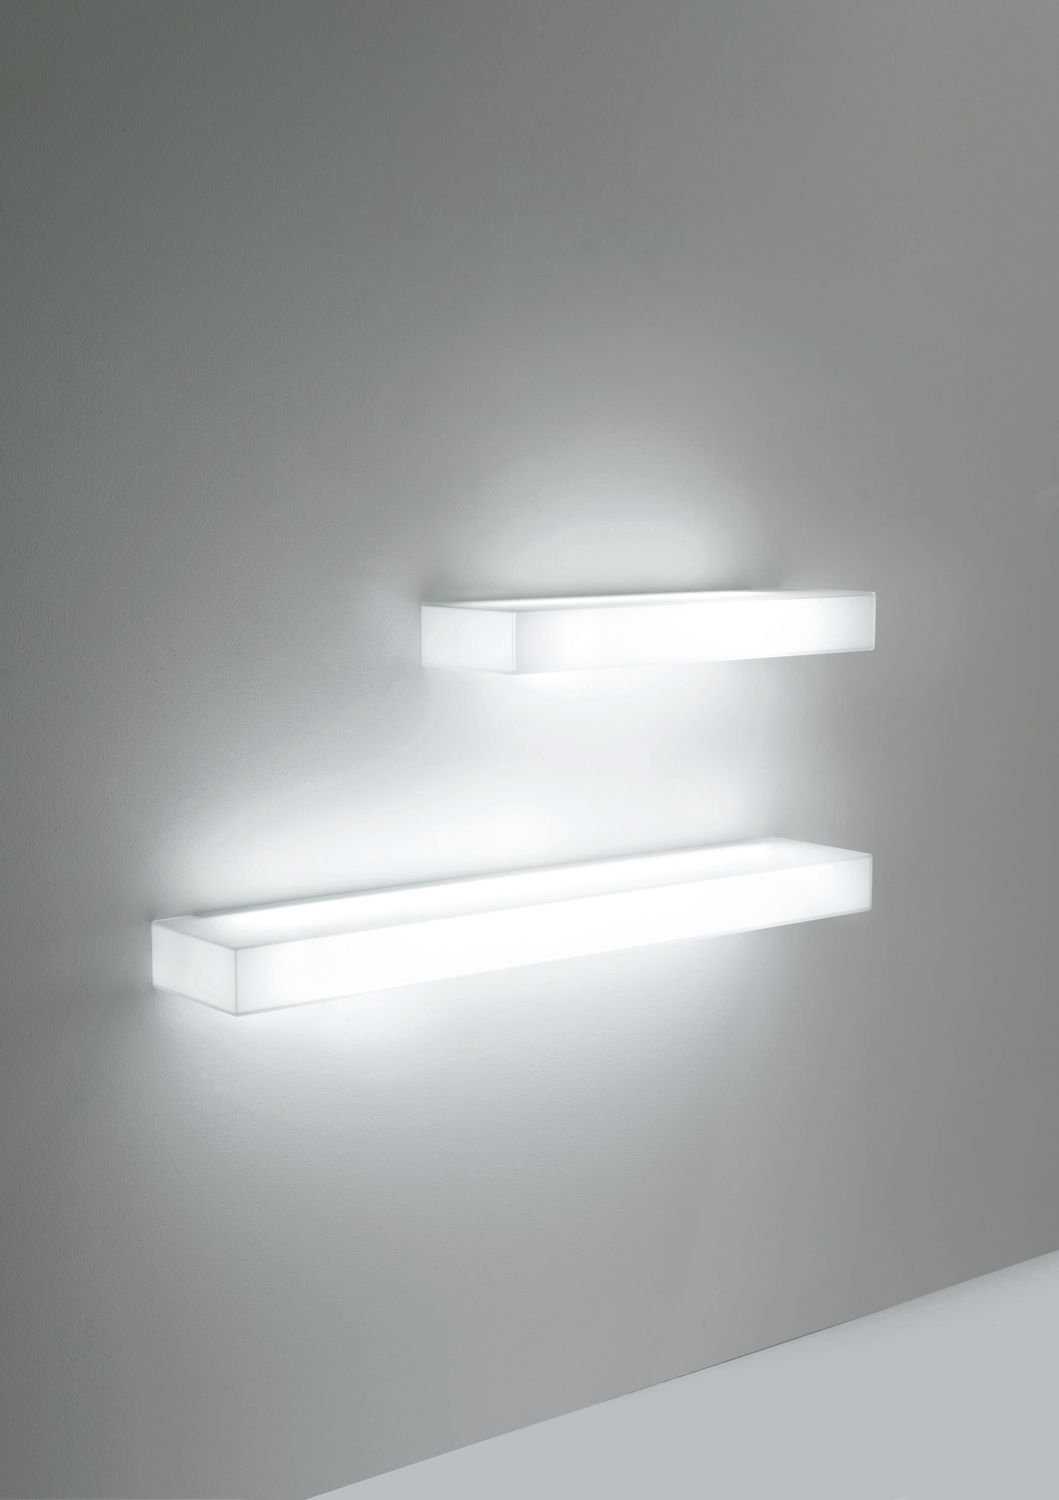 Wall Mounted Shelf Contemporary Glass Illuminated Light Pertaining To Illuminated Glass Shelves (#10 of 12)